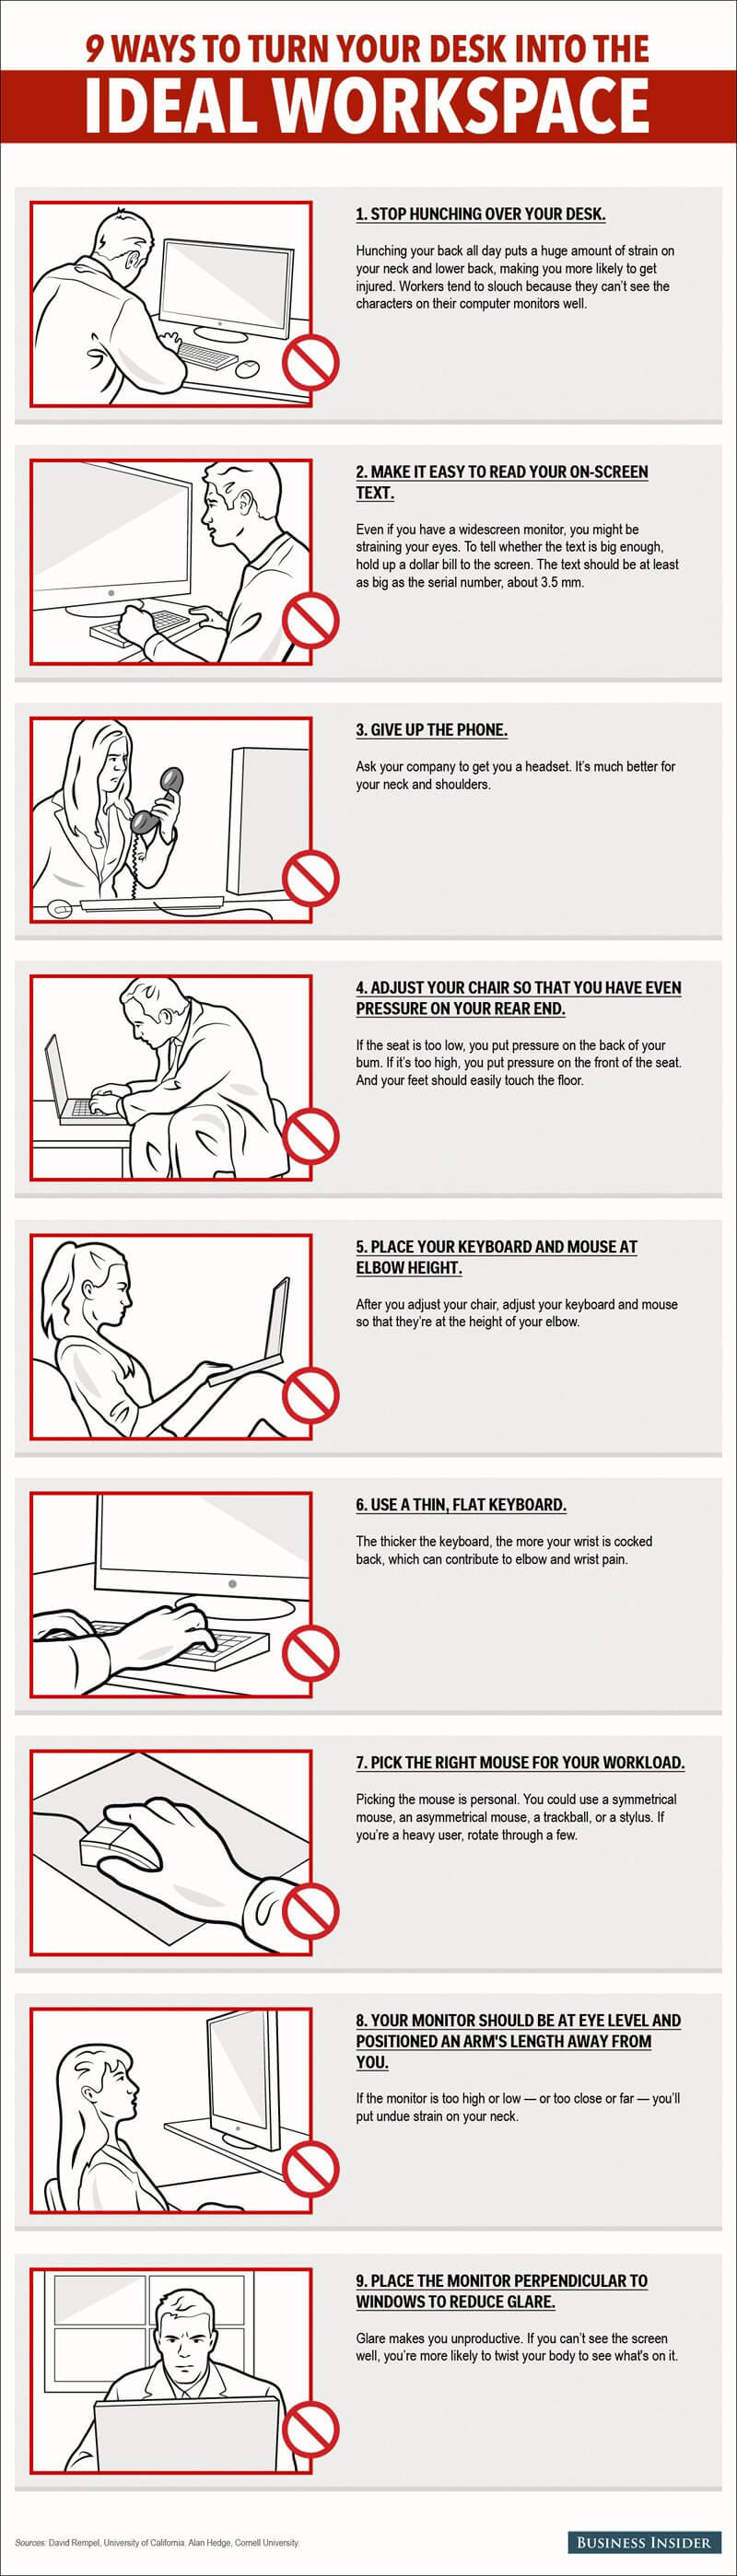 1397589579-9-ways-turn-desk-ideal-workspace-infographic